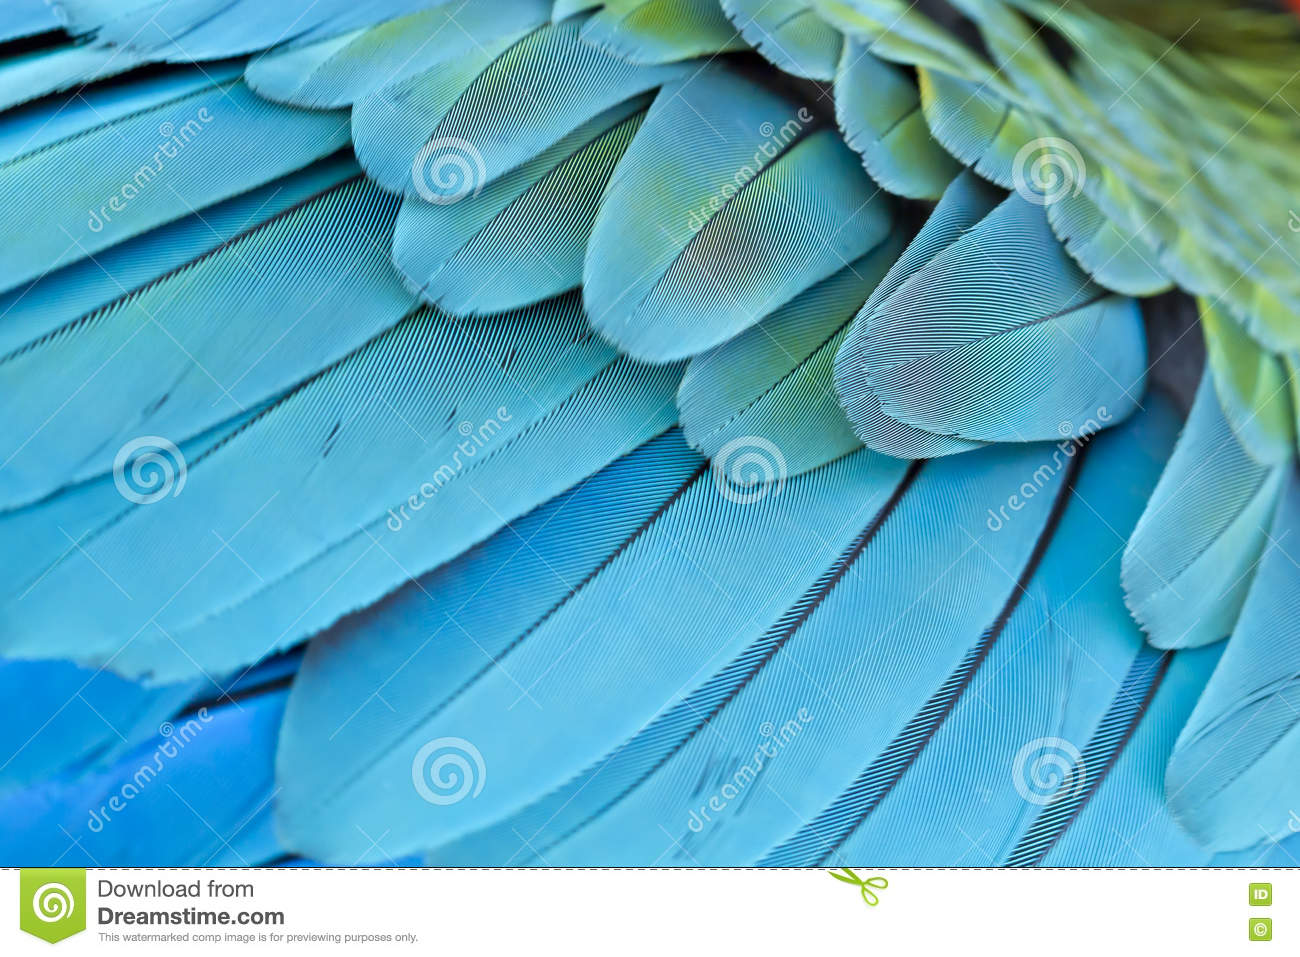 Download Closeup Feather Blue And Gold Macaw Stock Image - Image of blue, colourful: 77287355